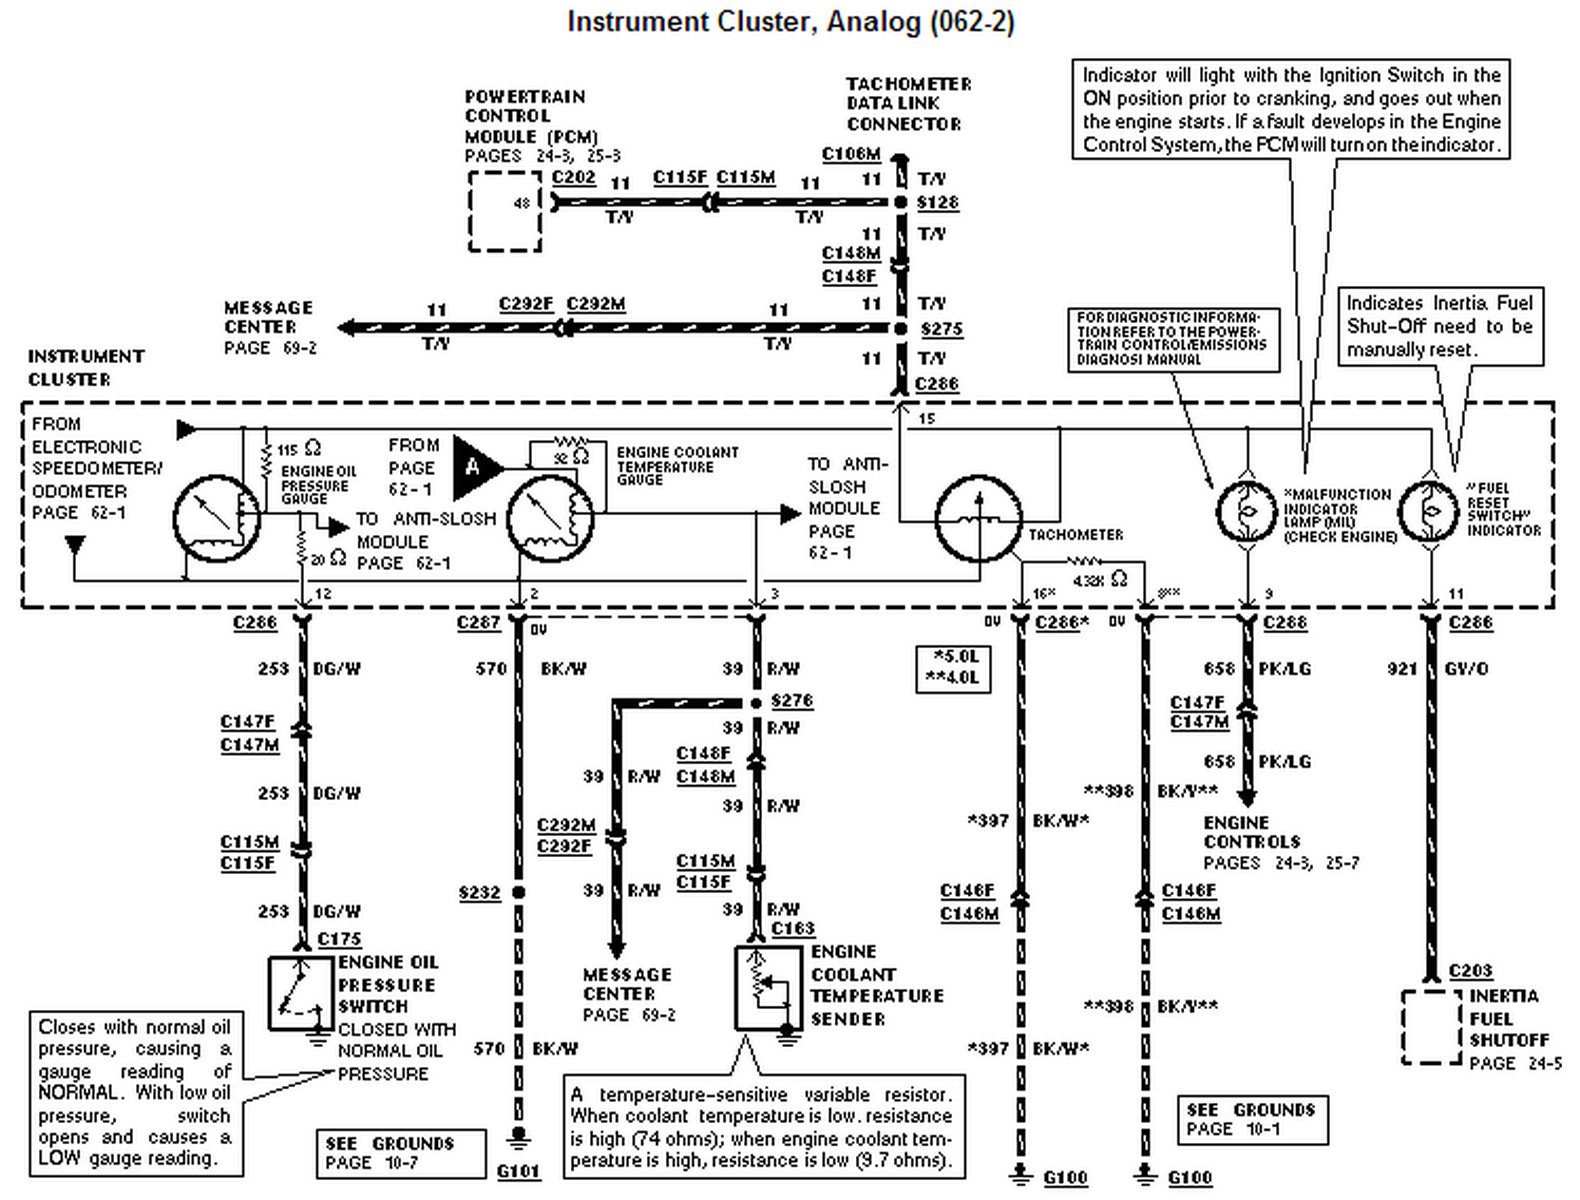 ford edge wiring diagram wiring diagram 2011 dodge ram 1500 wiring diagram dome light wiring diagram ford edge online wiring diagram